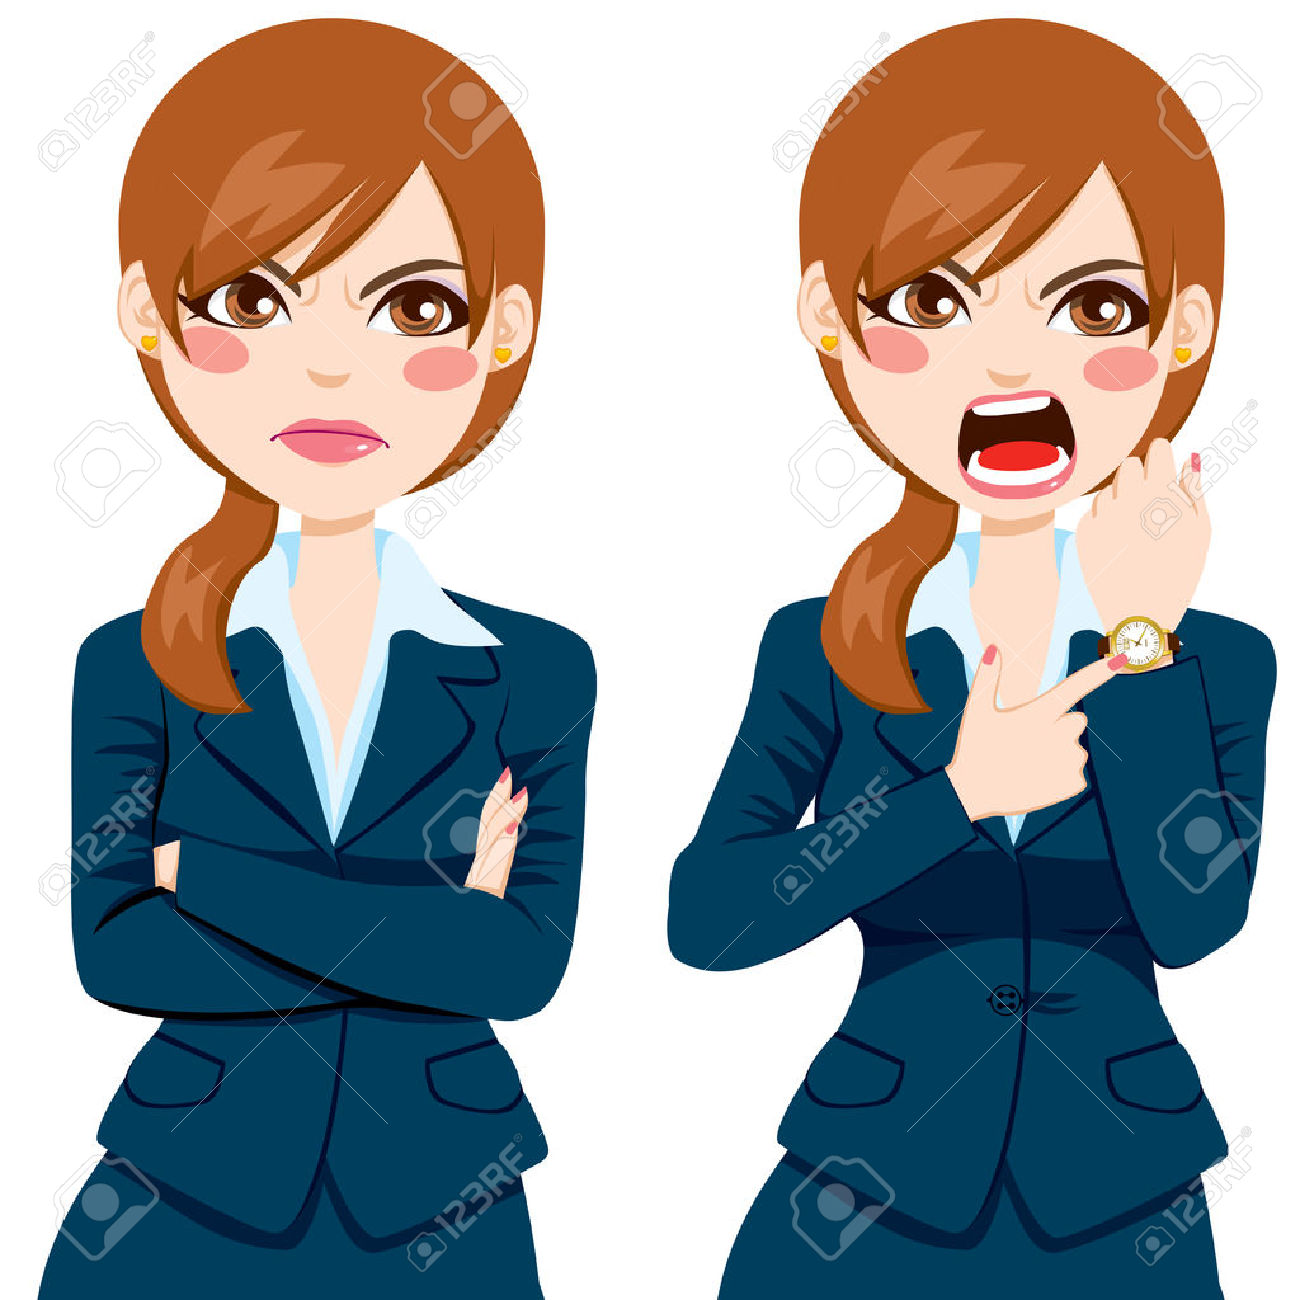 Angry clipart angry lady. Boss women cartoon